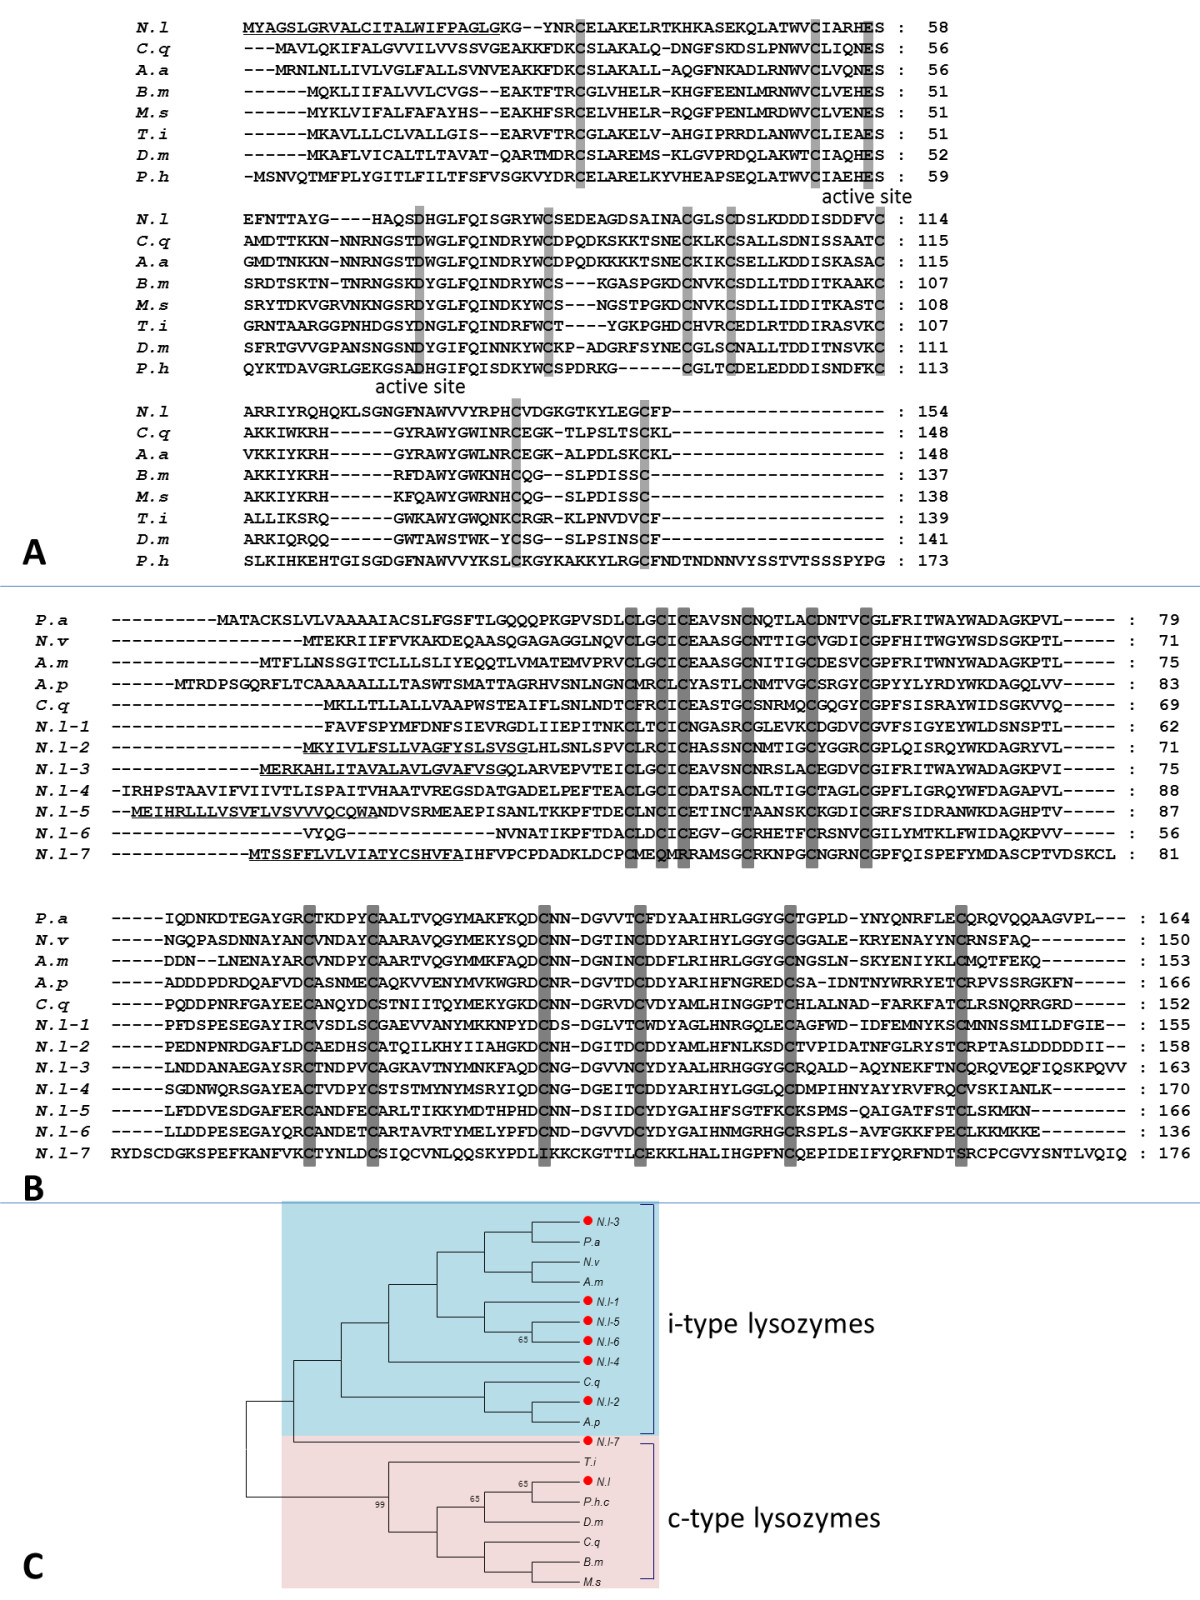 https://static-content.springer.com/image/art%3A10.1186%2F1471-2164-14-160/MediaObjects/12864_2012_Article_4871_Fig12_HTML.jpg